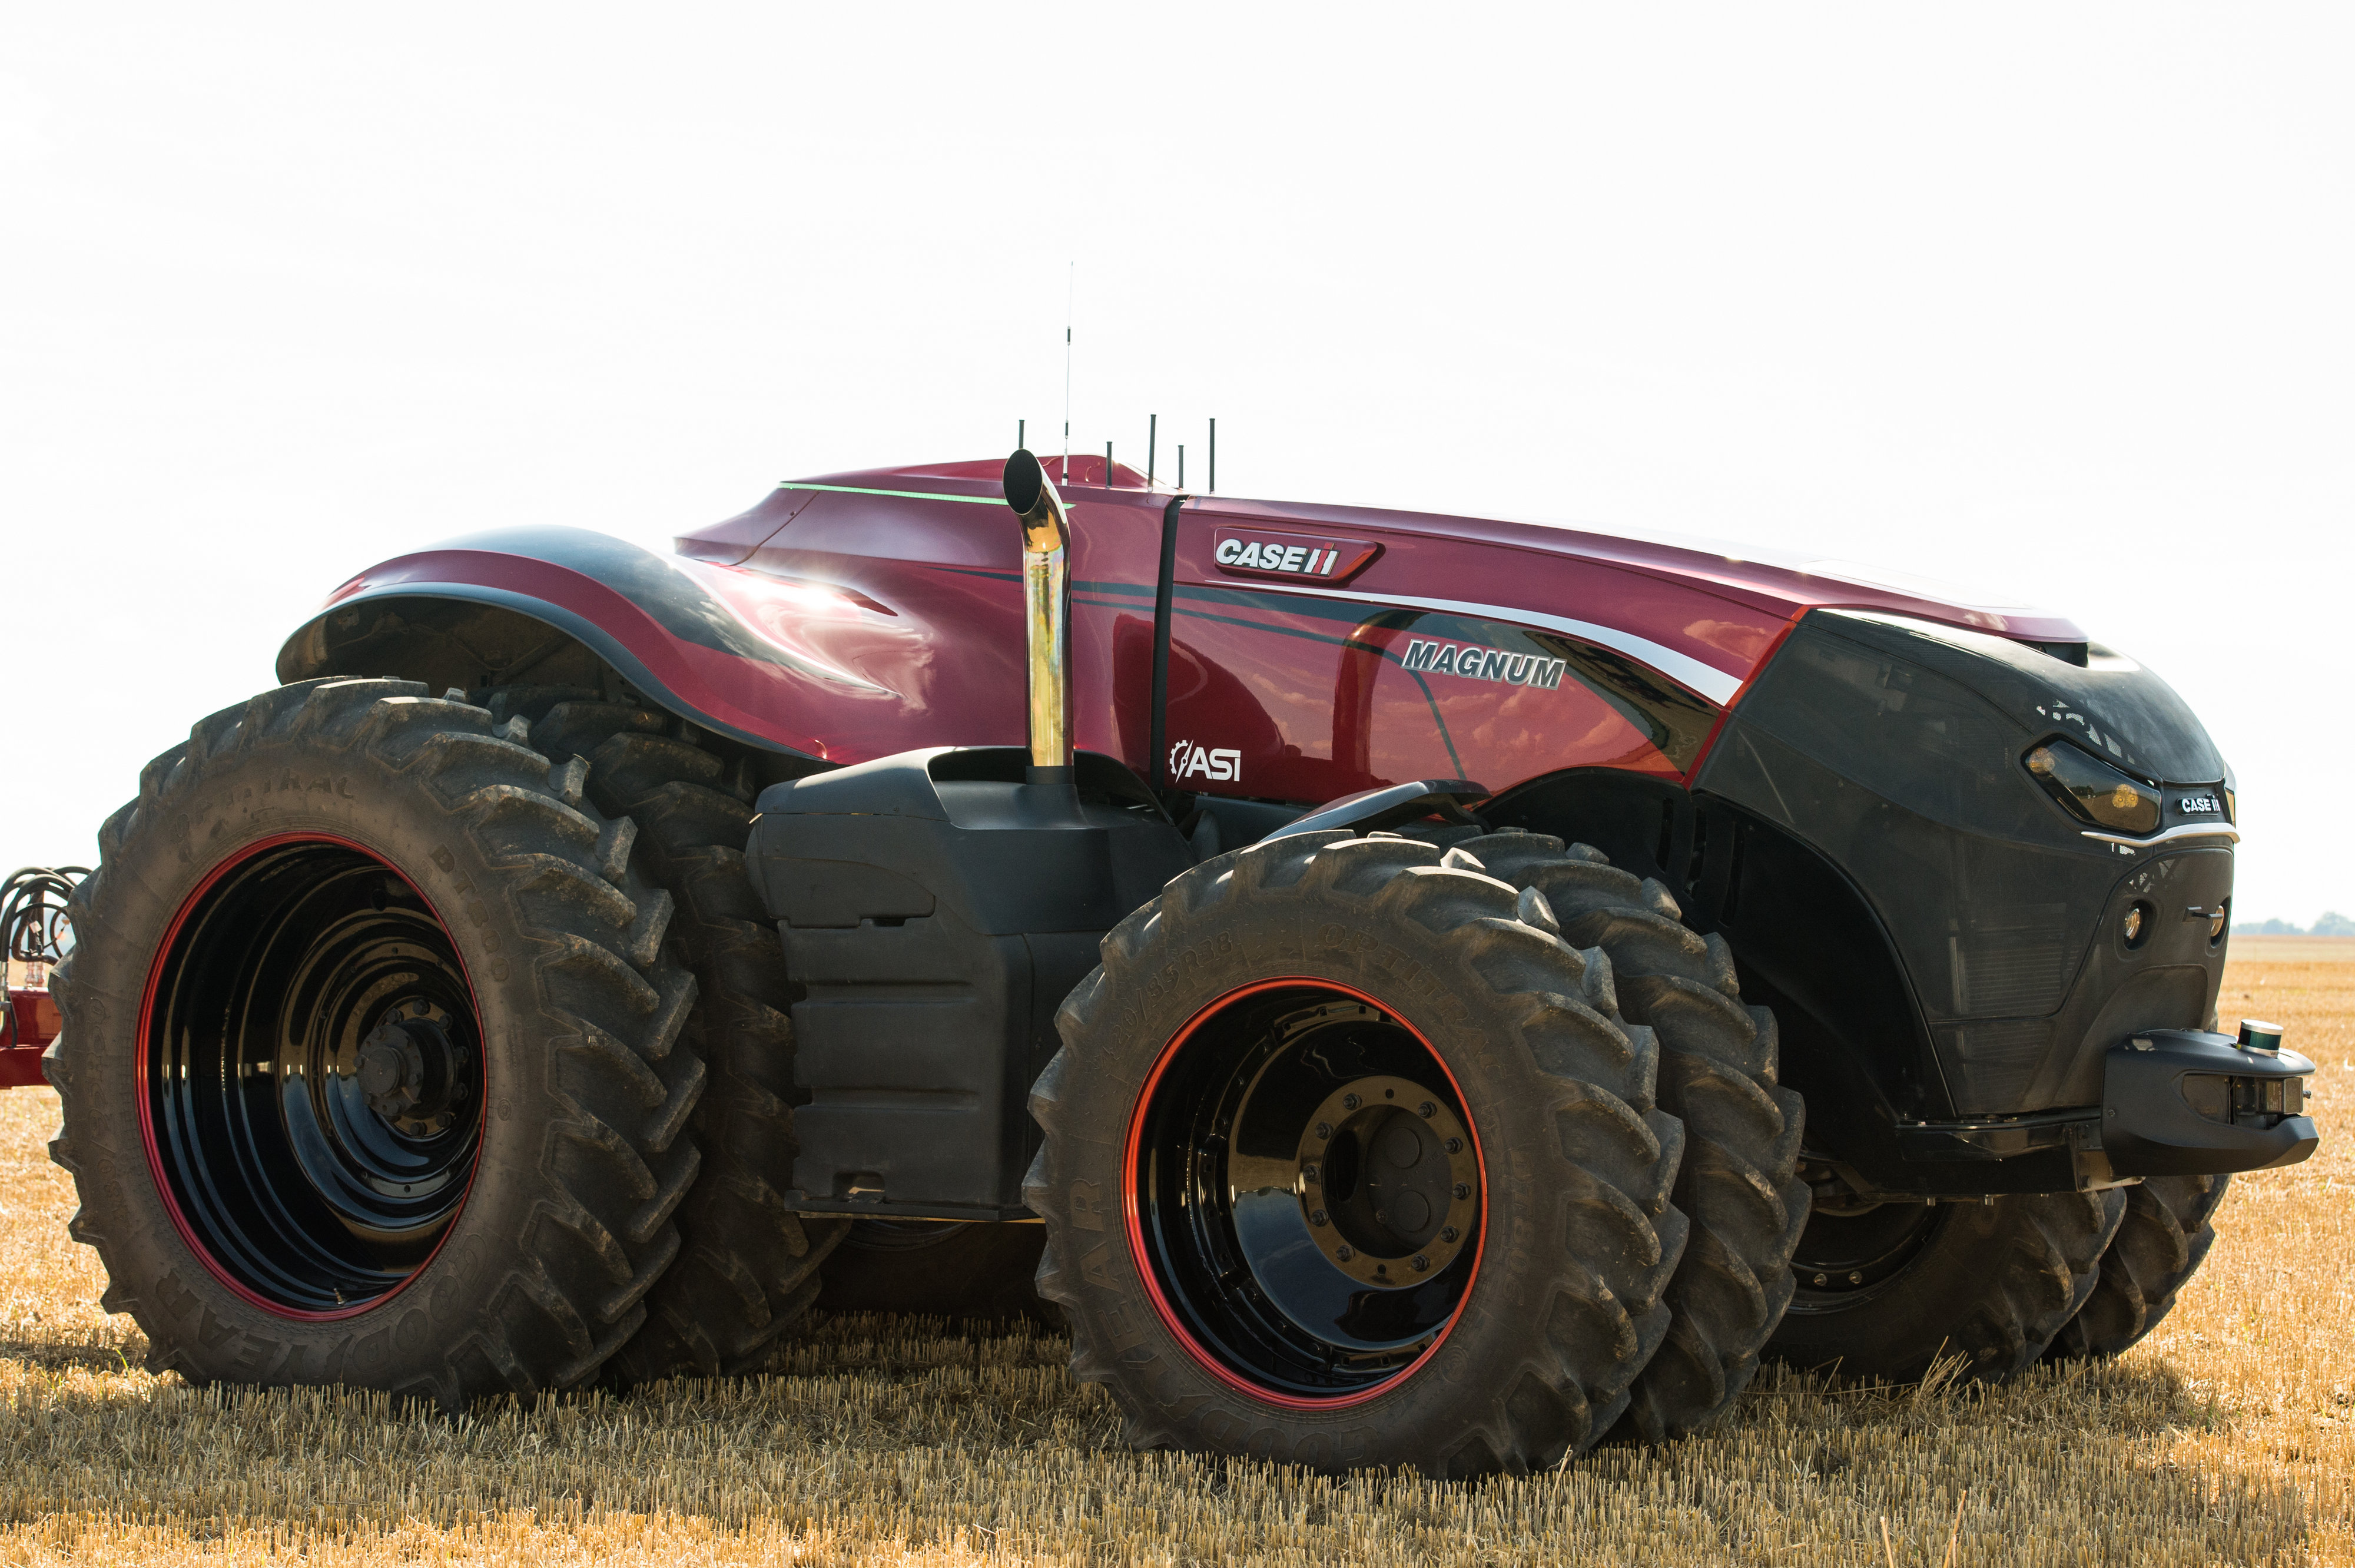 The vehicle can sense stationary or moving obstacles in its path